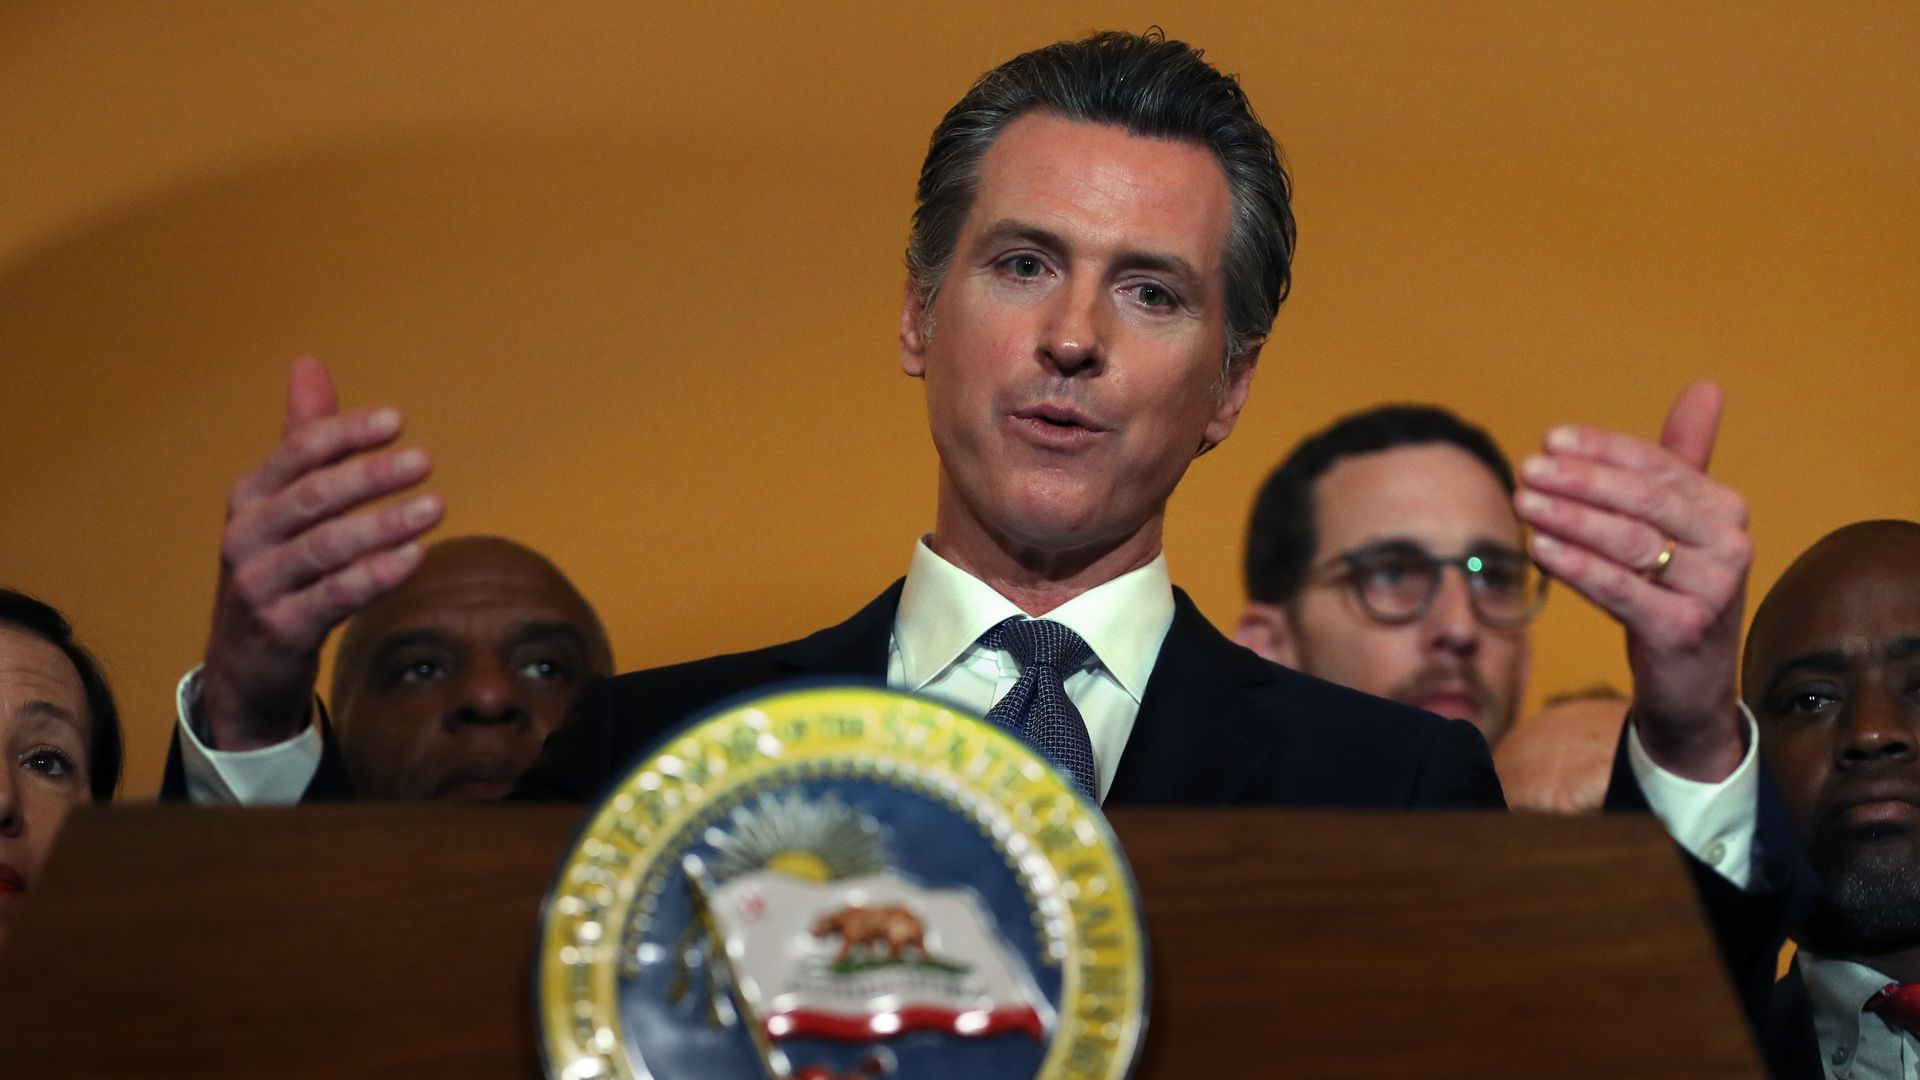 California Gov. Gavin Newsom (D) marked his 100th day in office on Wednesday.